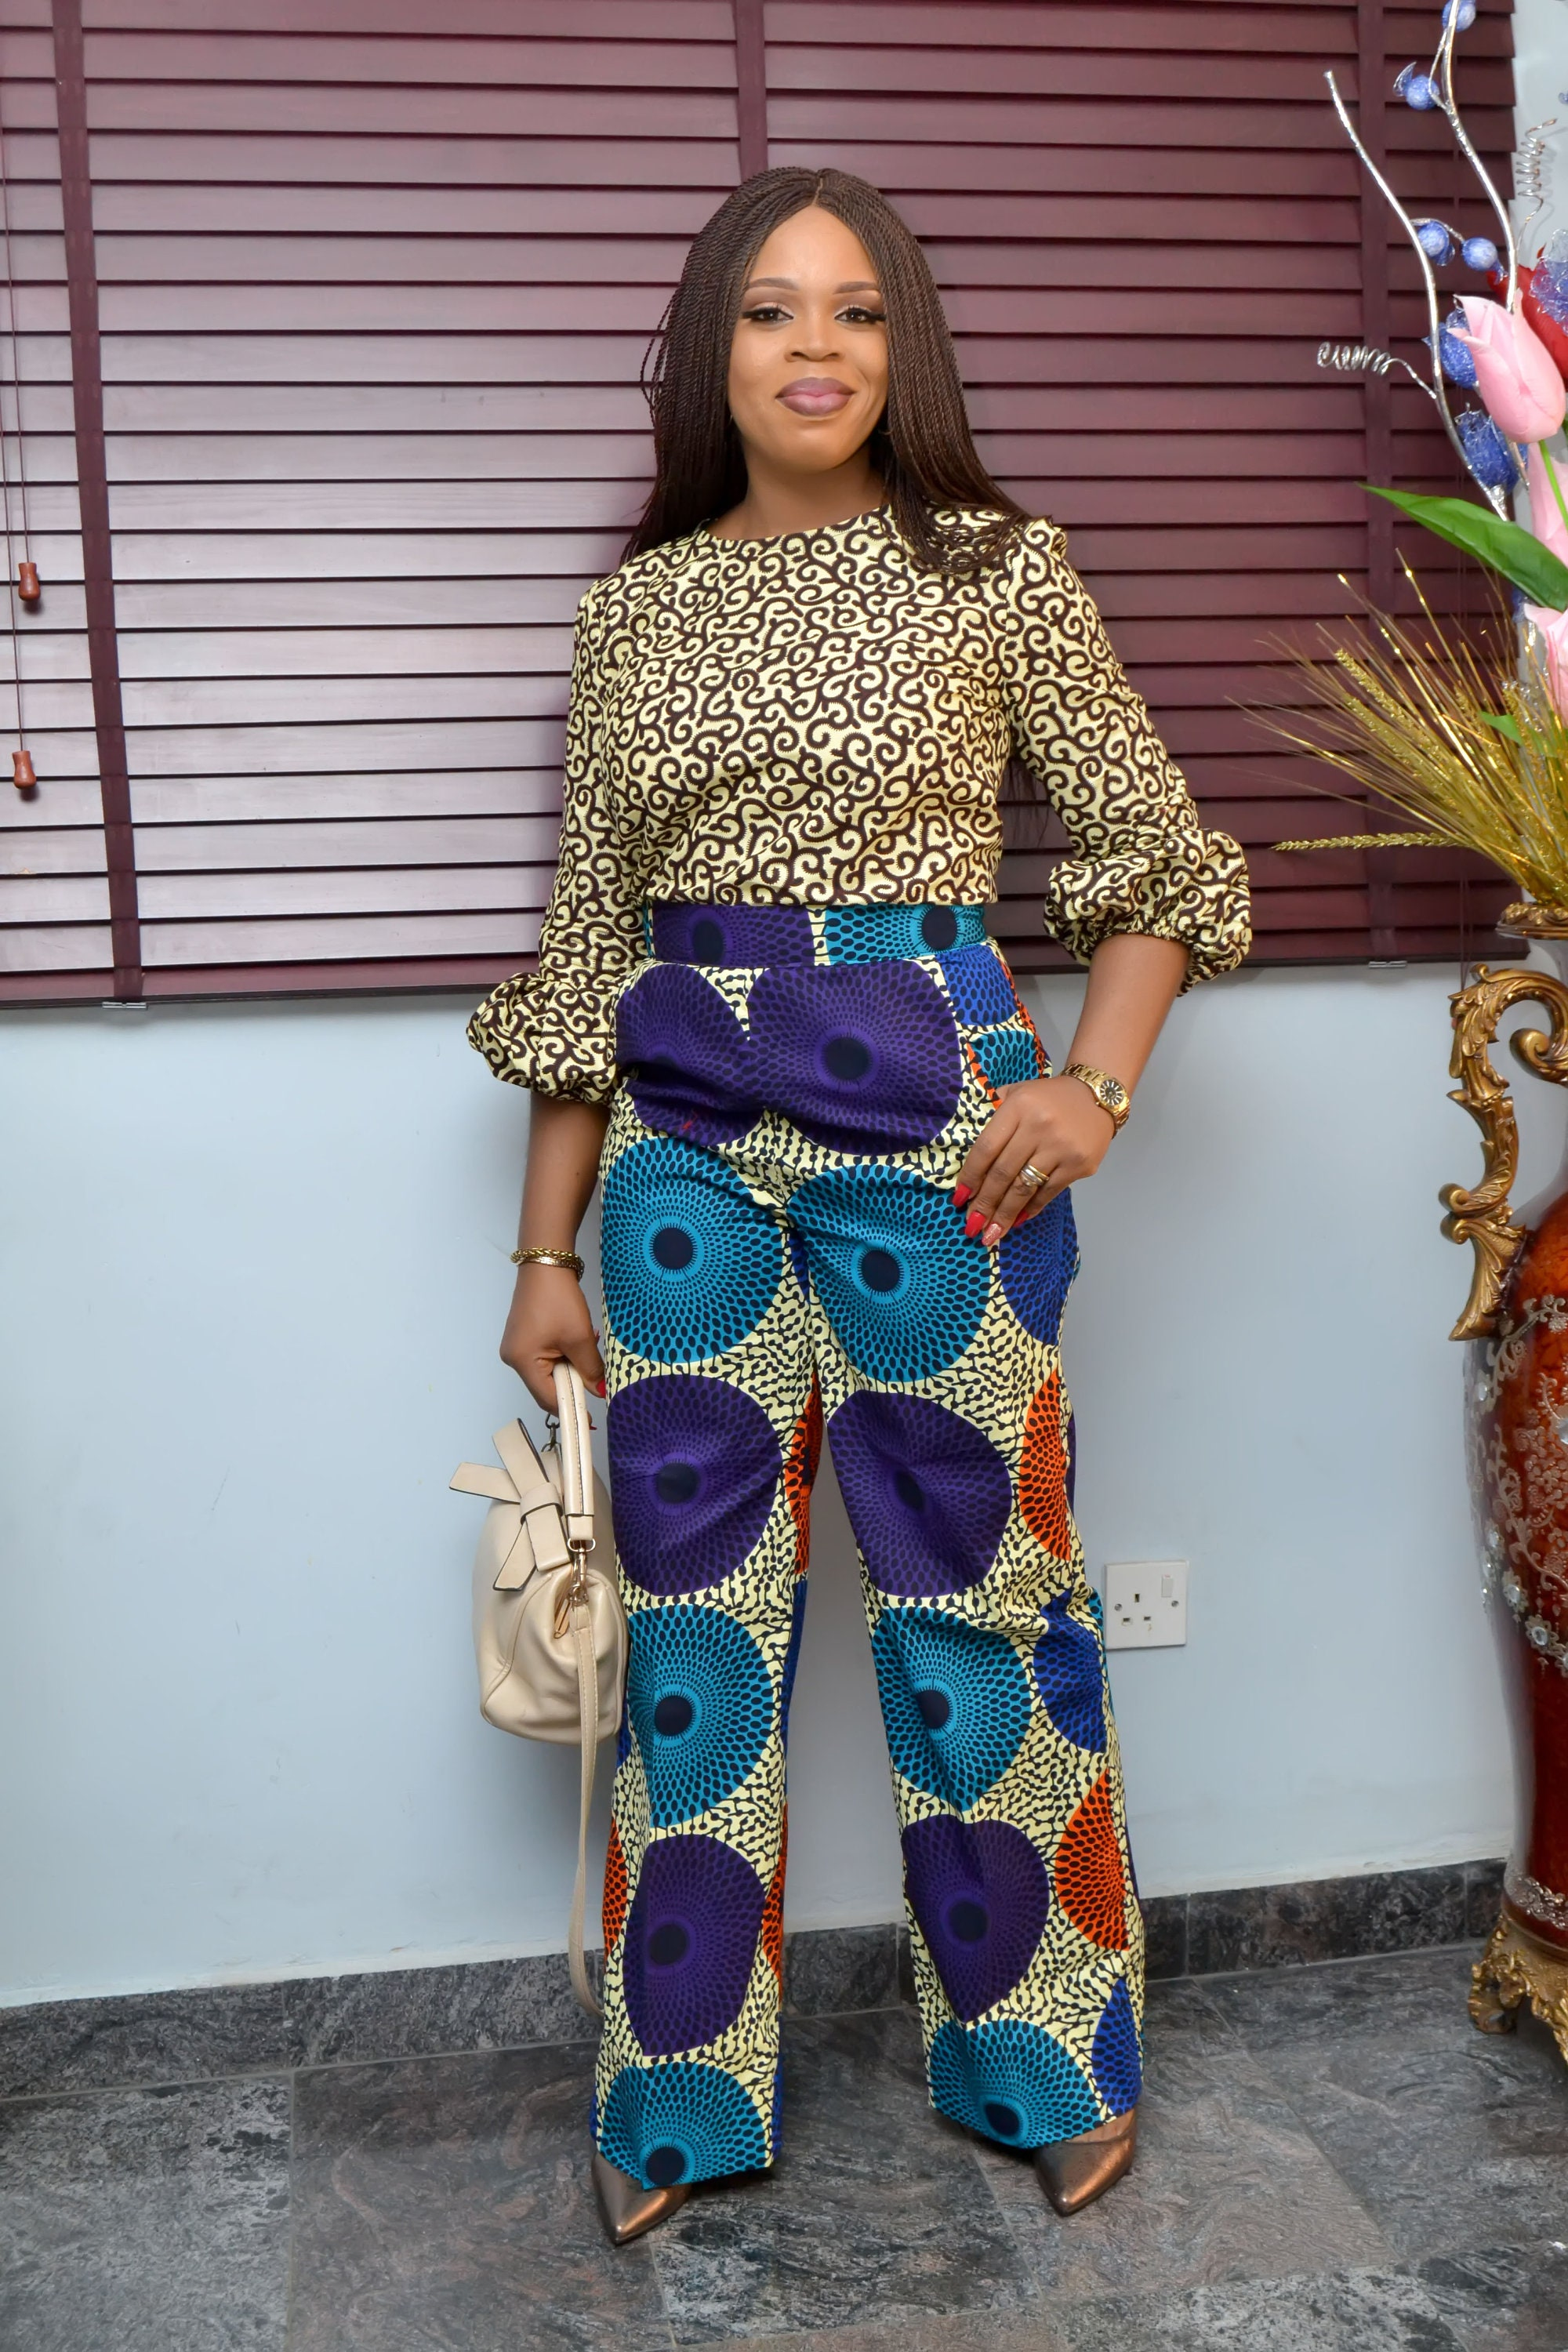 ff0fa9f3586 Wide Leg Pant   Top Set  African Fashion  Graduation gift for